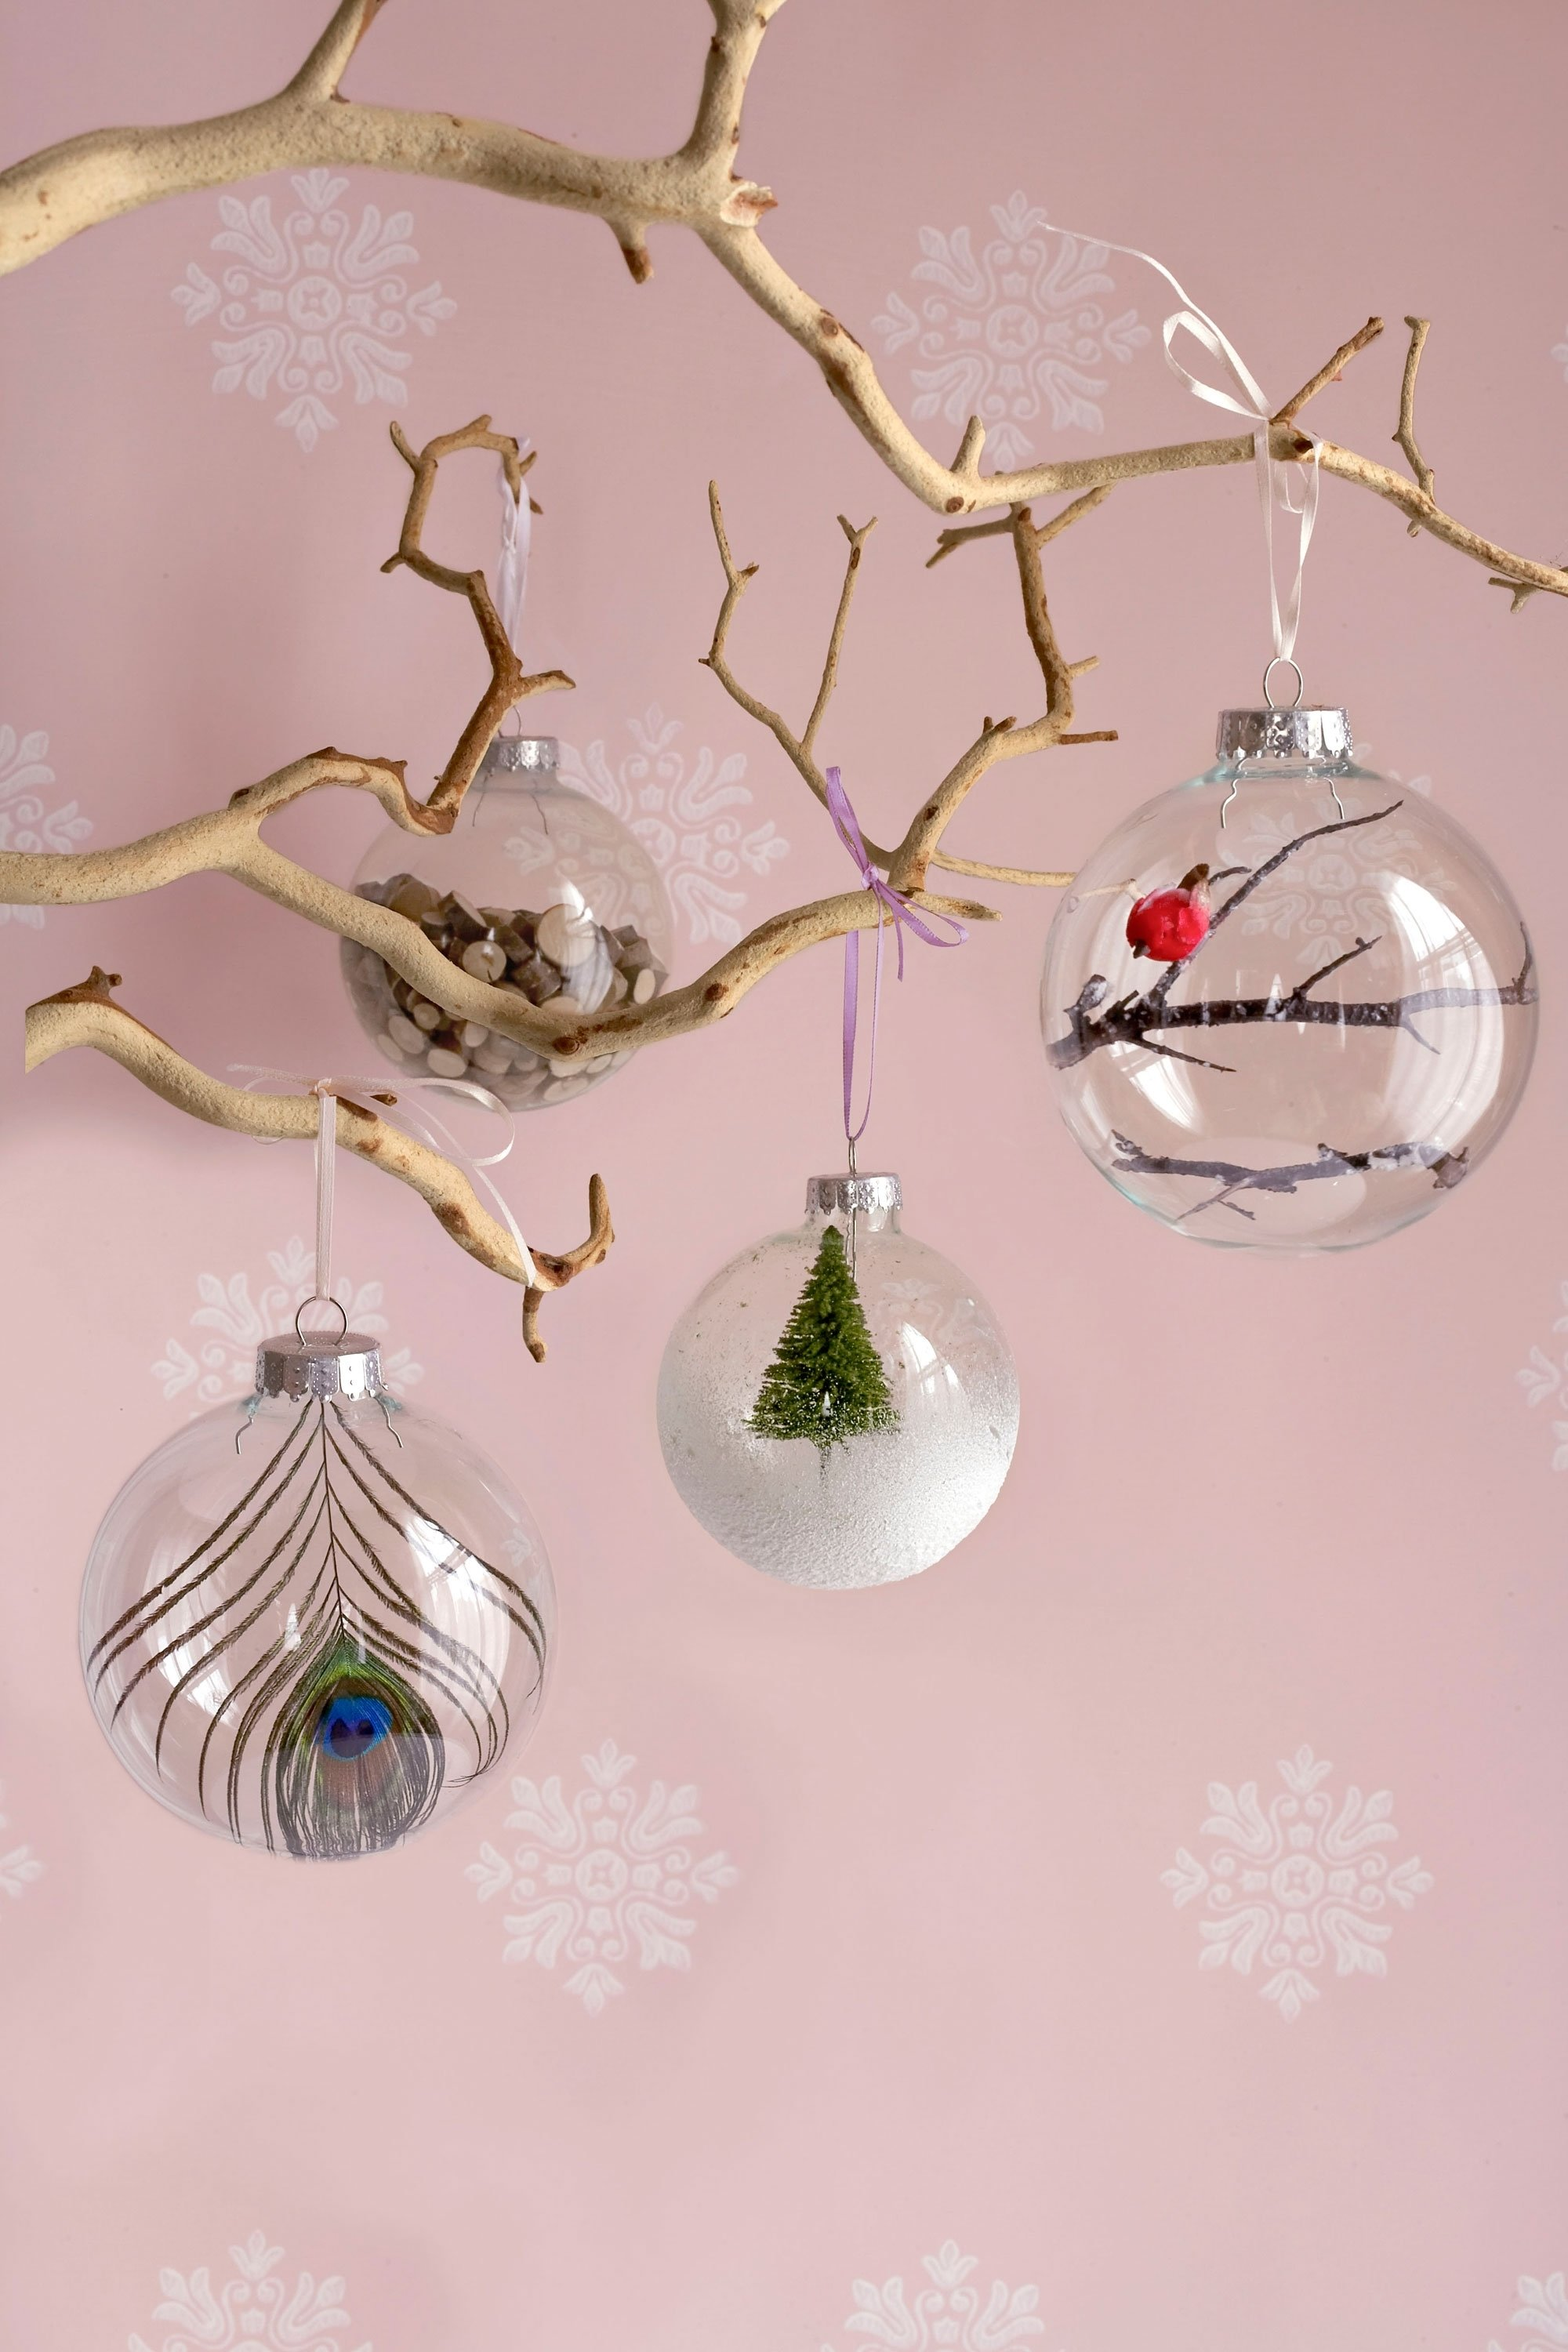 10 Most Popular Make Your Own Ornaments Ideas homemade christmas ornaments diy crafts with tree idolza 2021